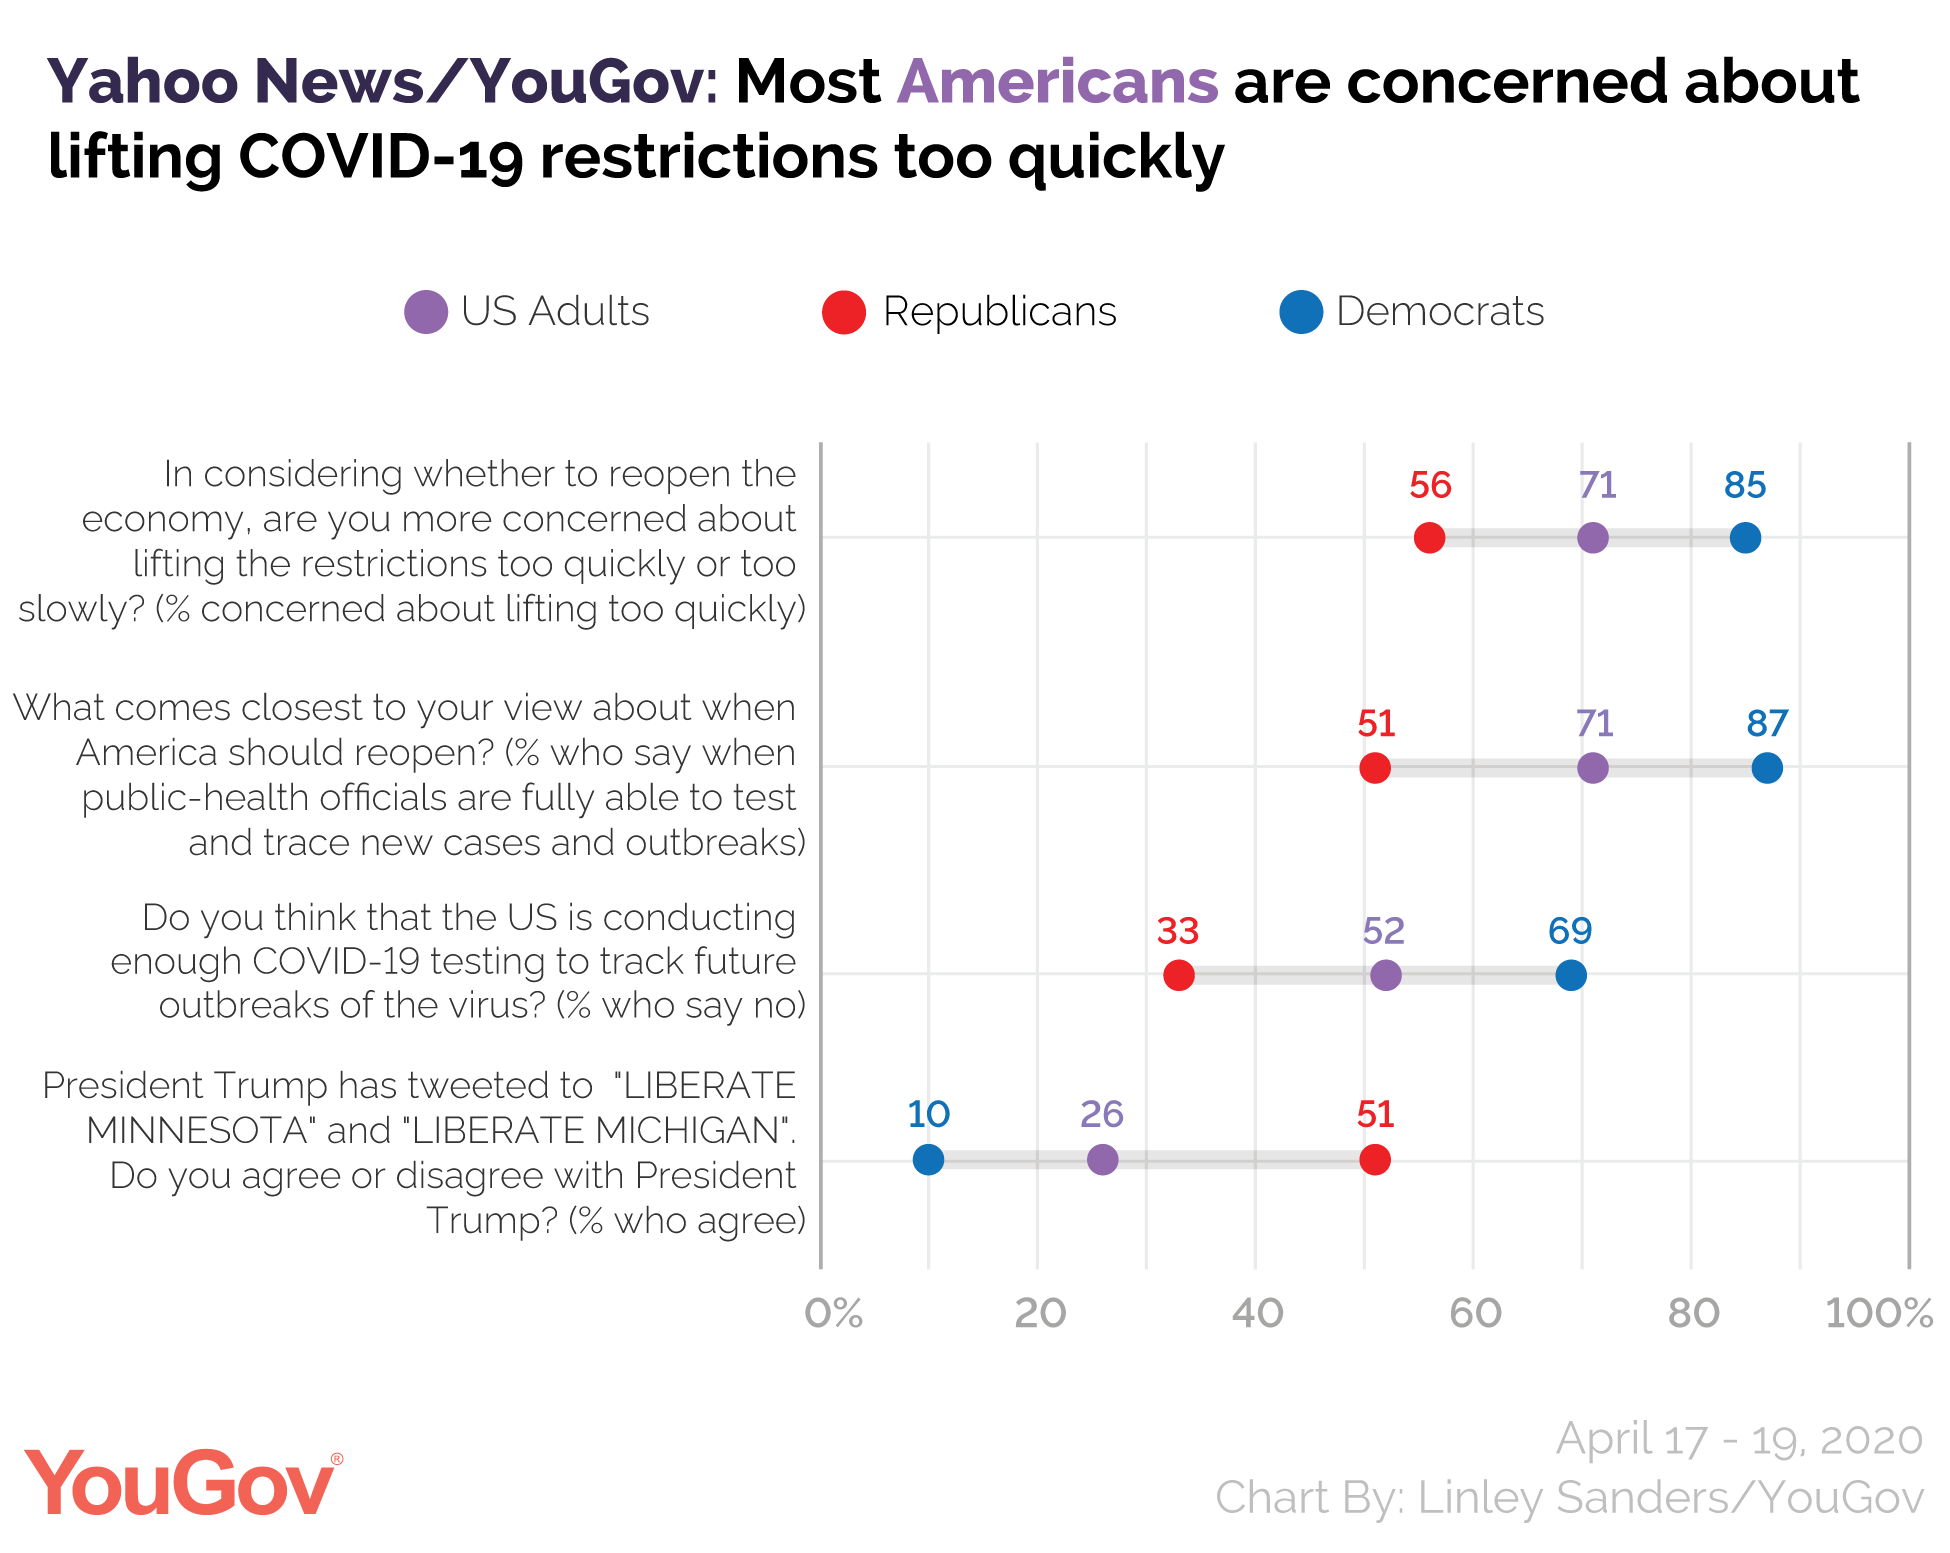 Yahoo News/YouGov: Most Americans are concerned about lifting COVID-19 restrictions too quickly